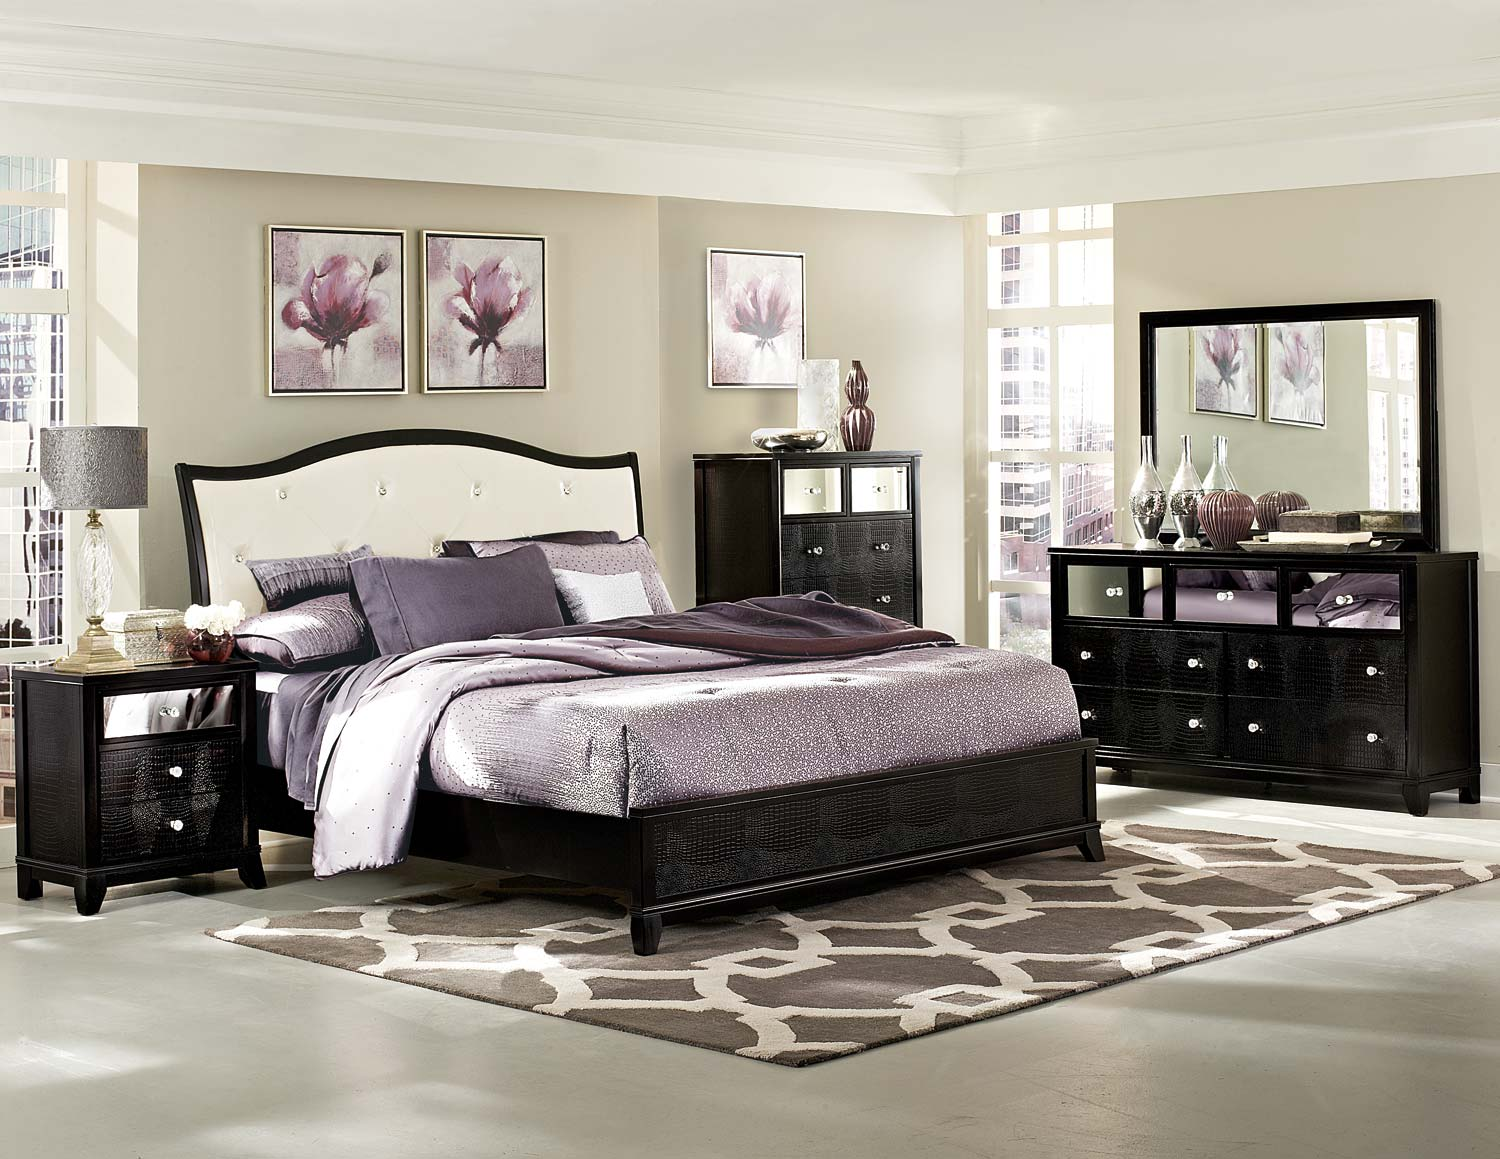 homelegance jacqueline upholstered bedroom collection - faux